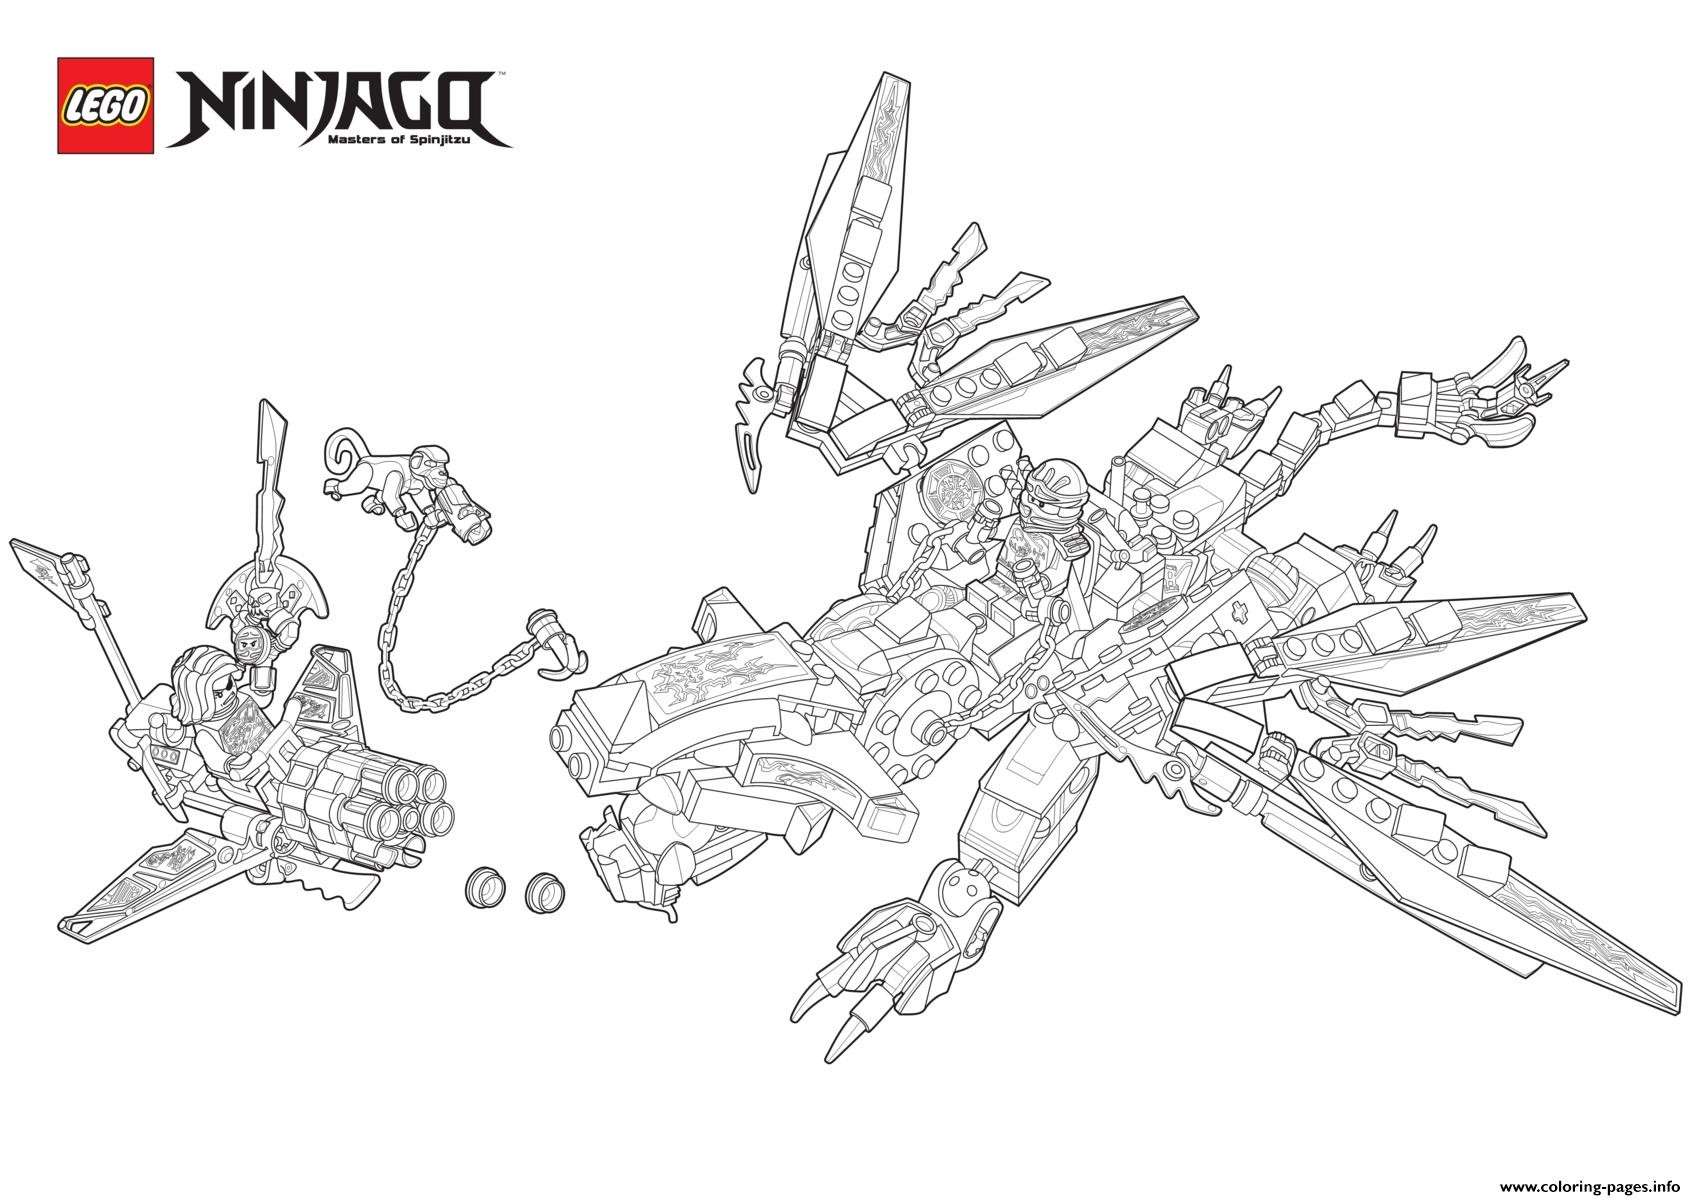 ninjago monster dragon lego coloring pages printable